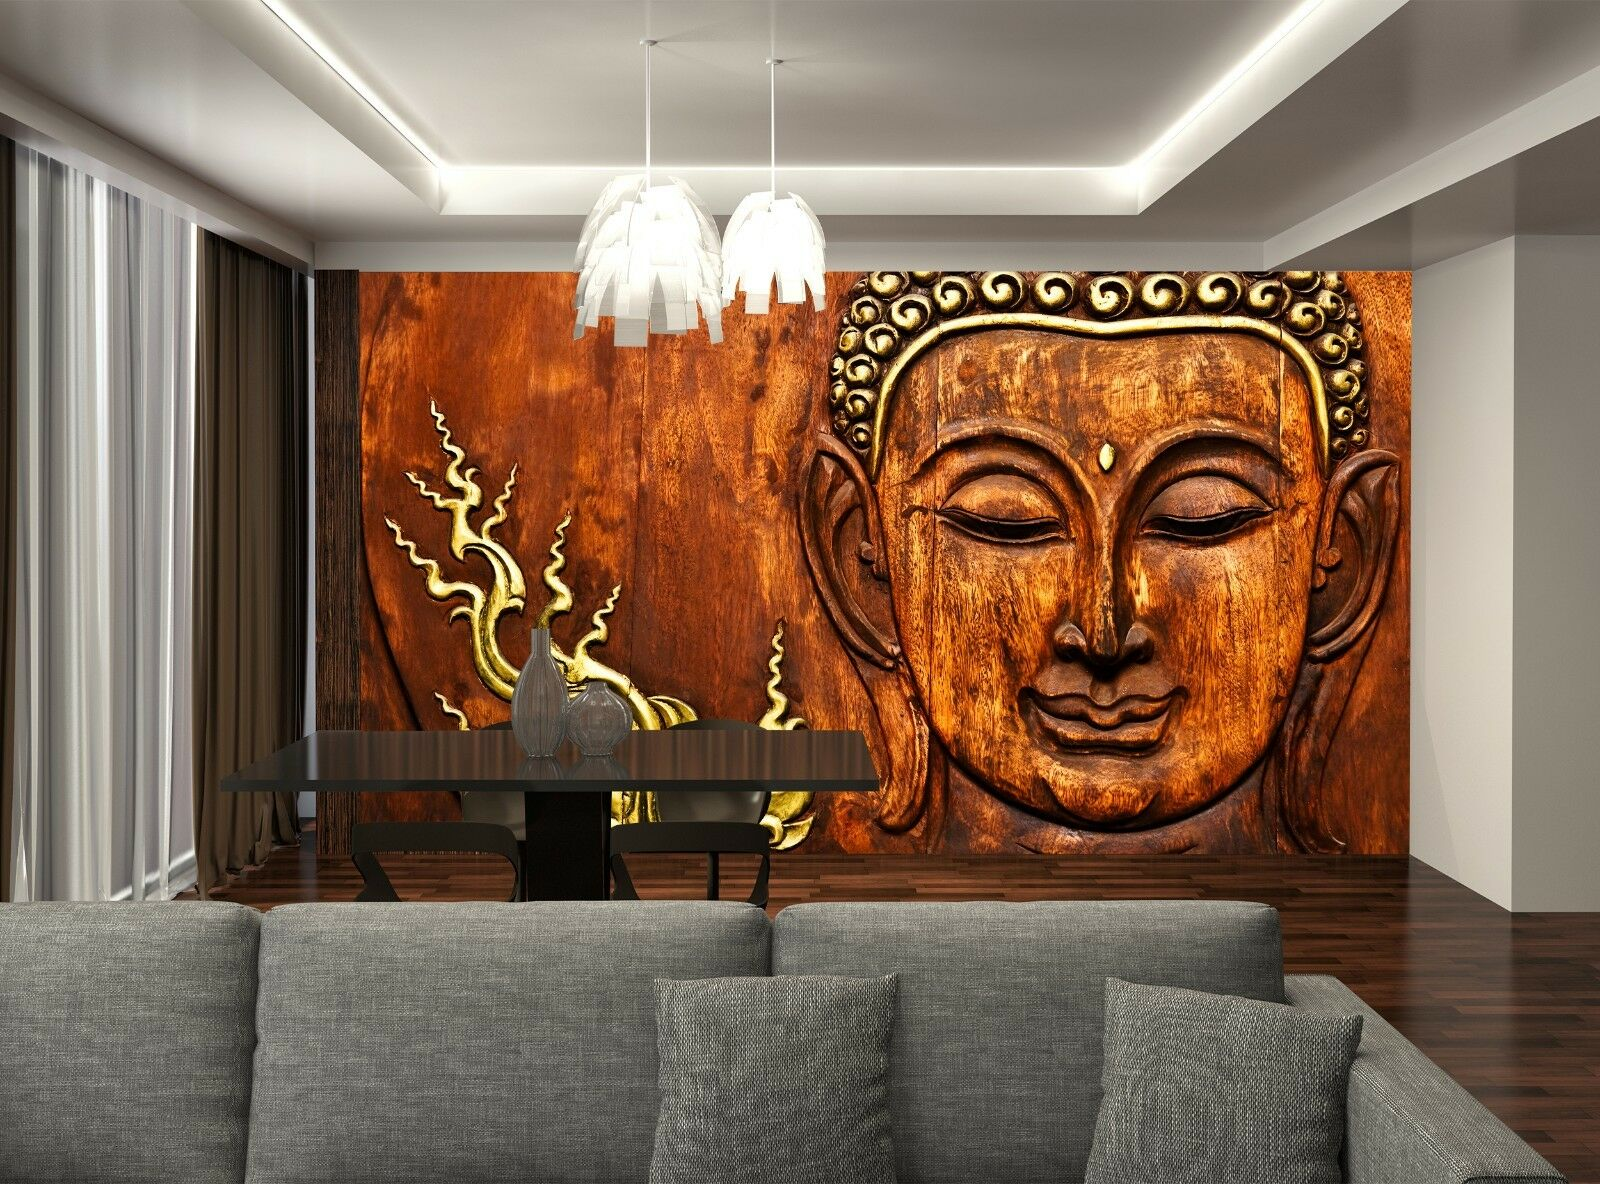 buddha wood carving wall mural photo wallpaper giant wall decor paper poster cad. Black Bedroom Furniture Sets. Home Design Ideas